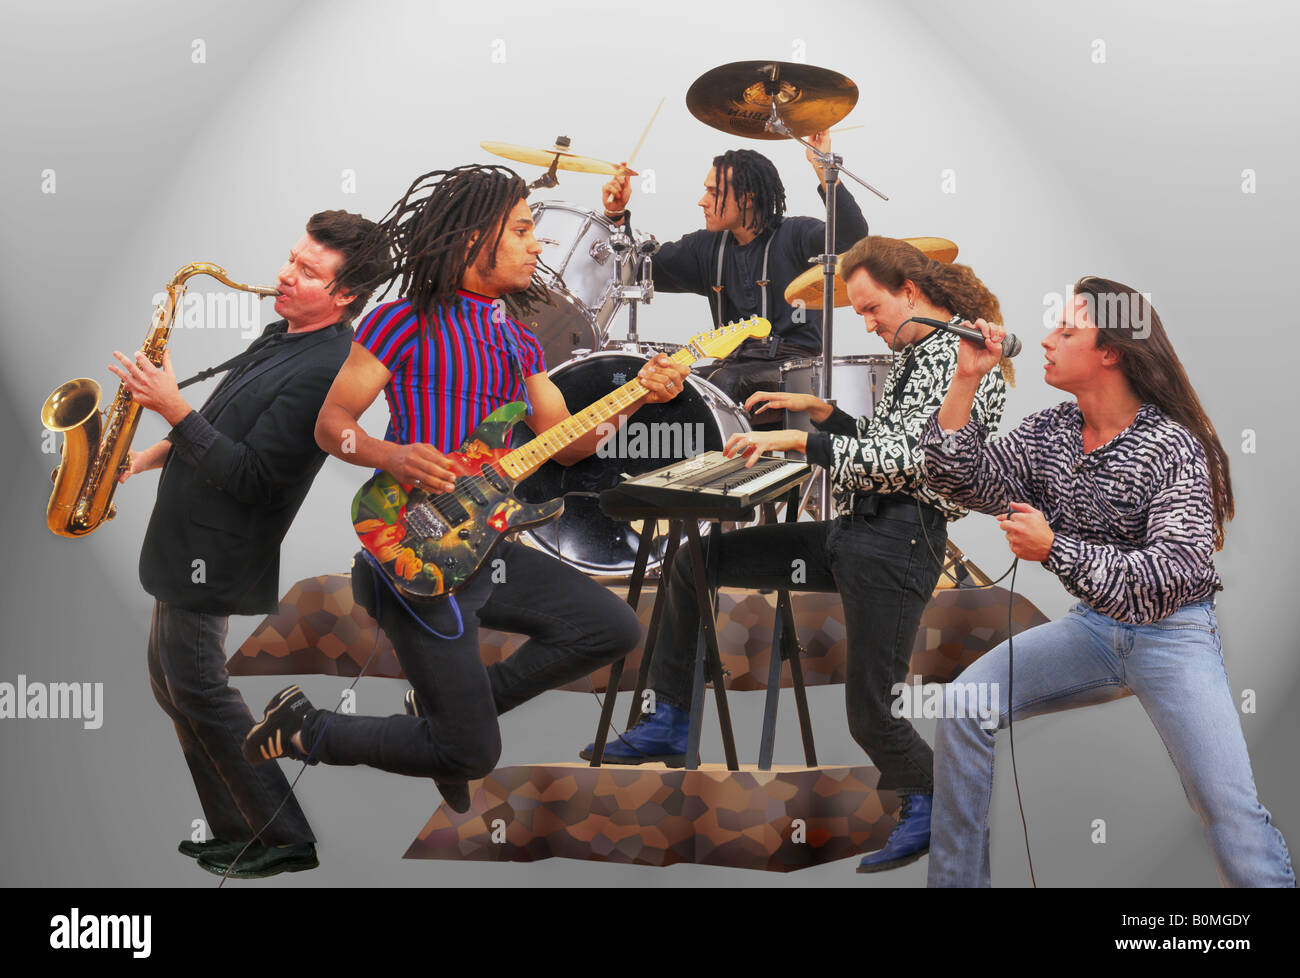 rock band - Stock Image